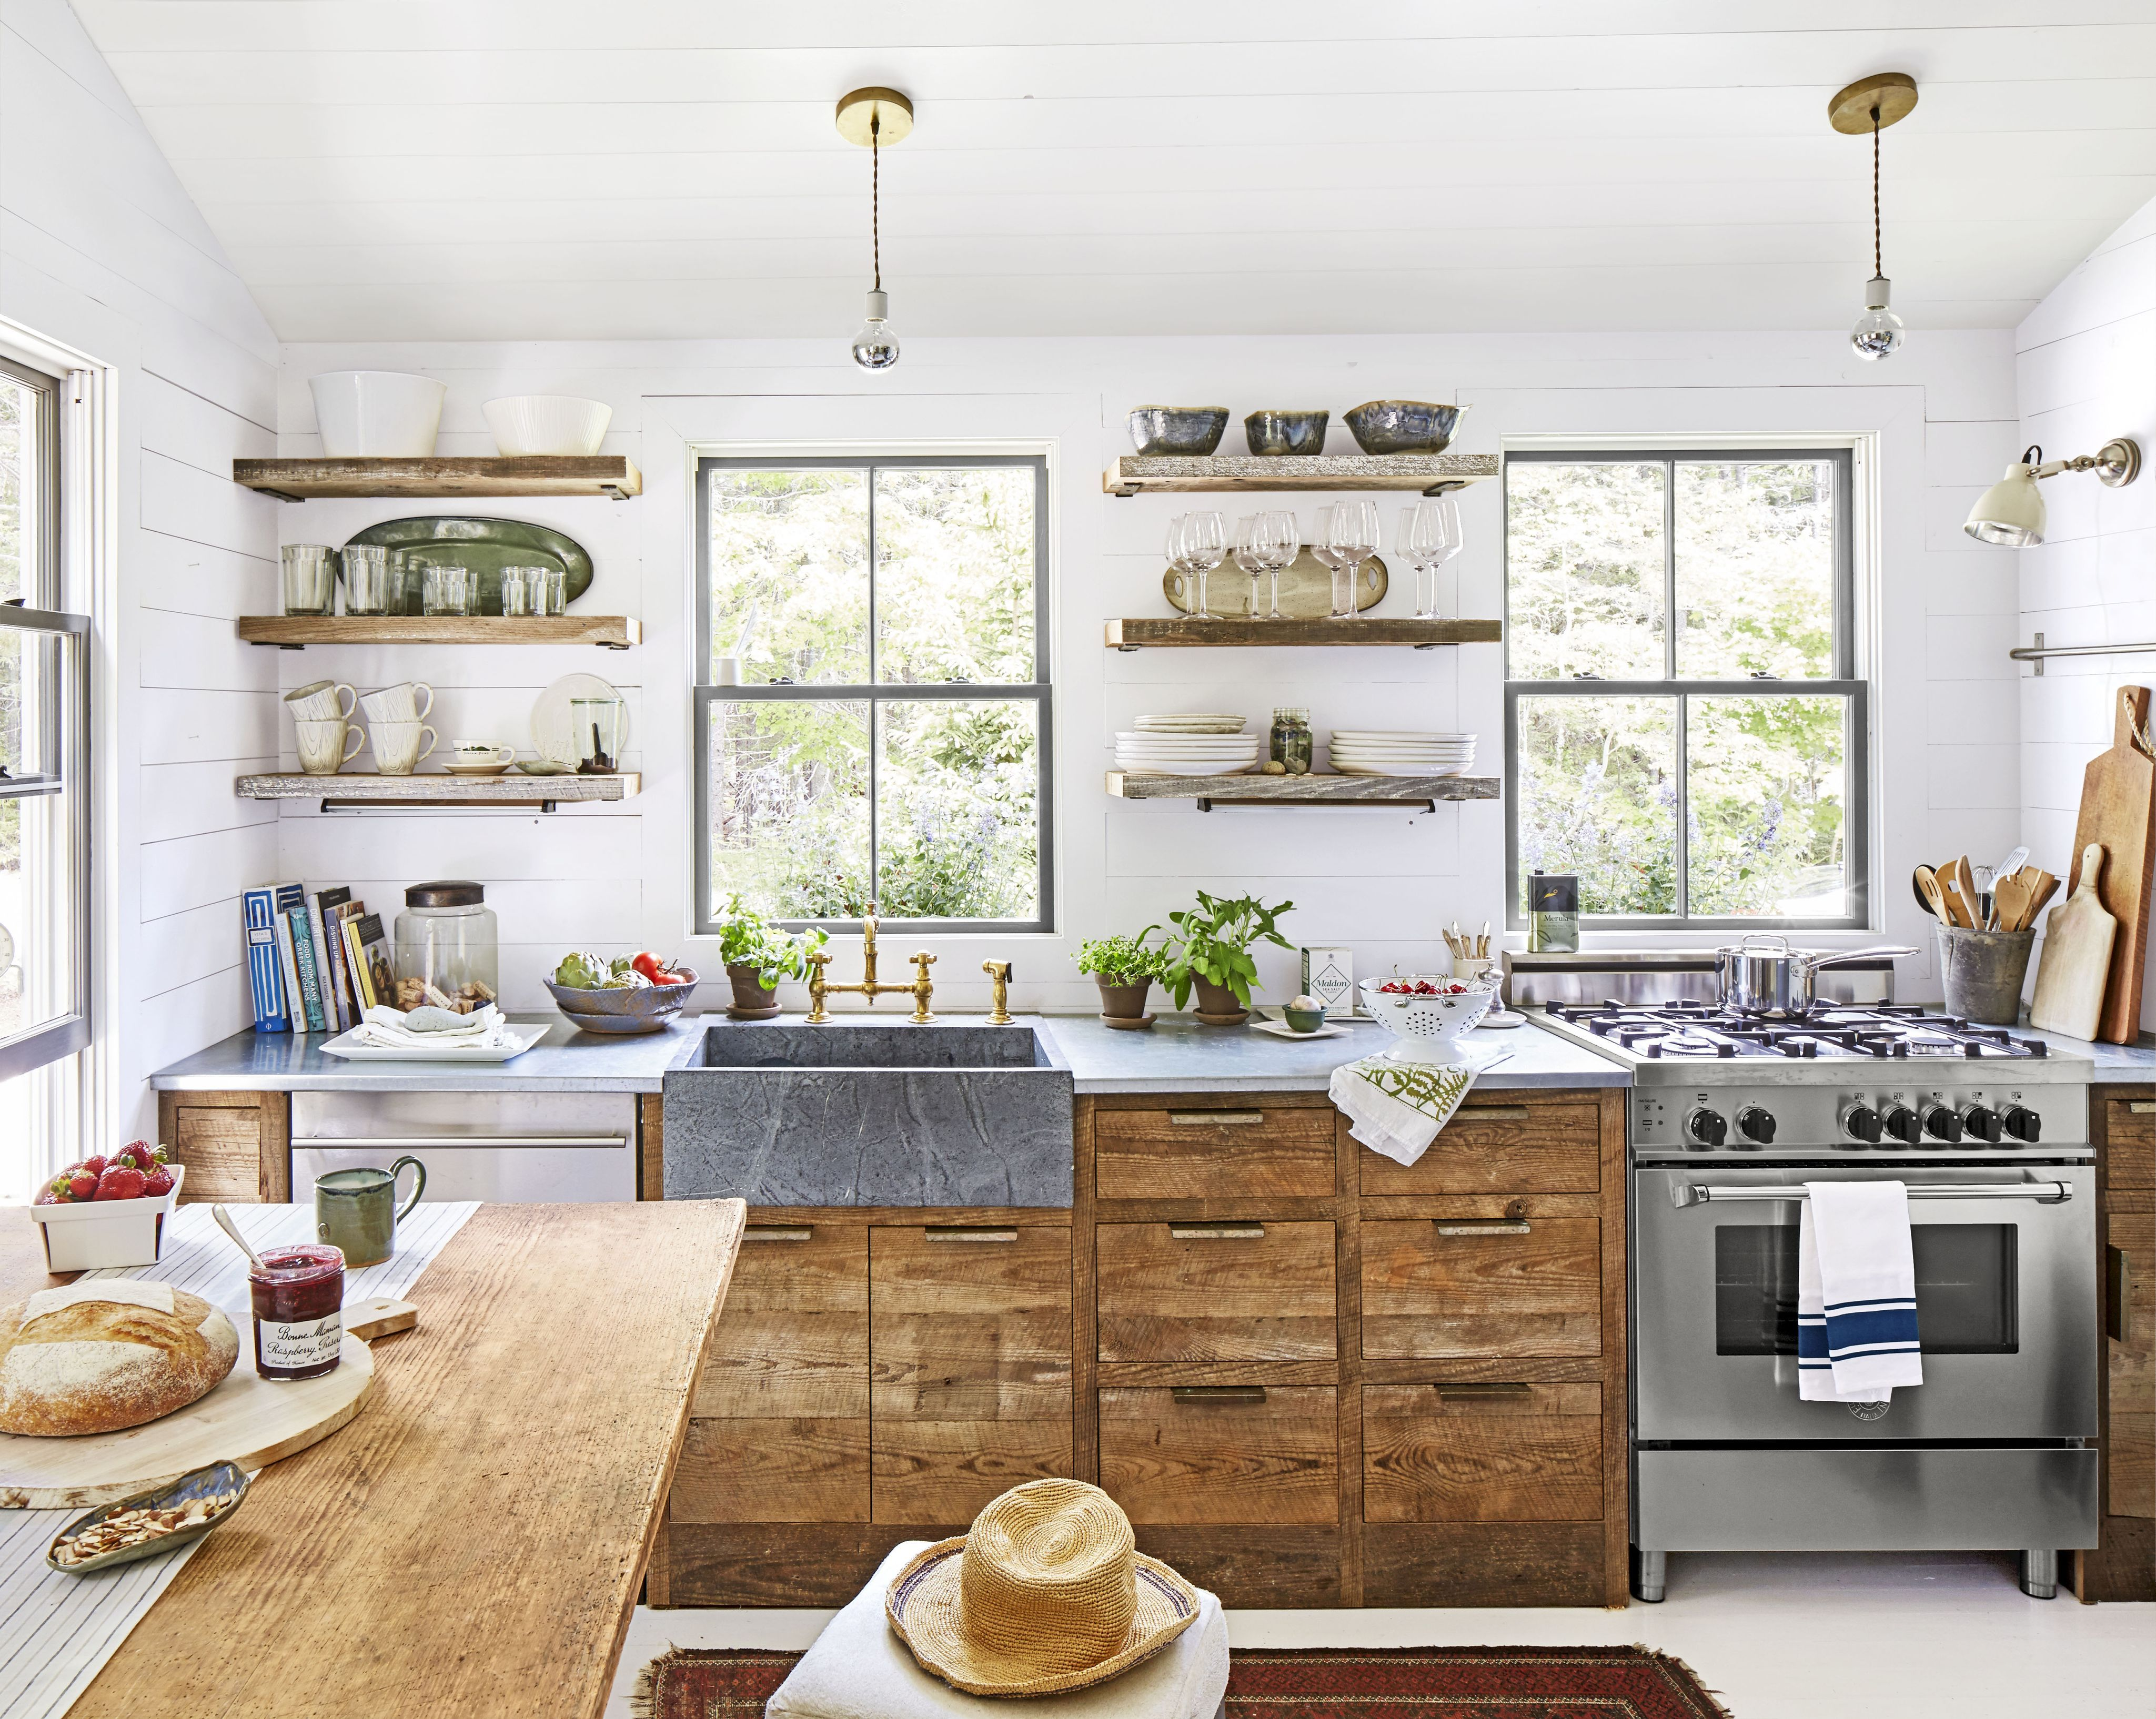 32 kitchen trends for 2020 that we predict will be everywhere in 2020 kitchen trends country on kitchen decor trends id=65932